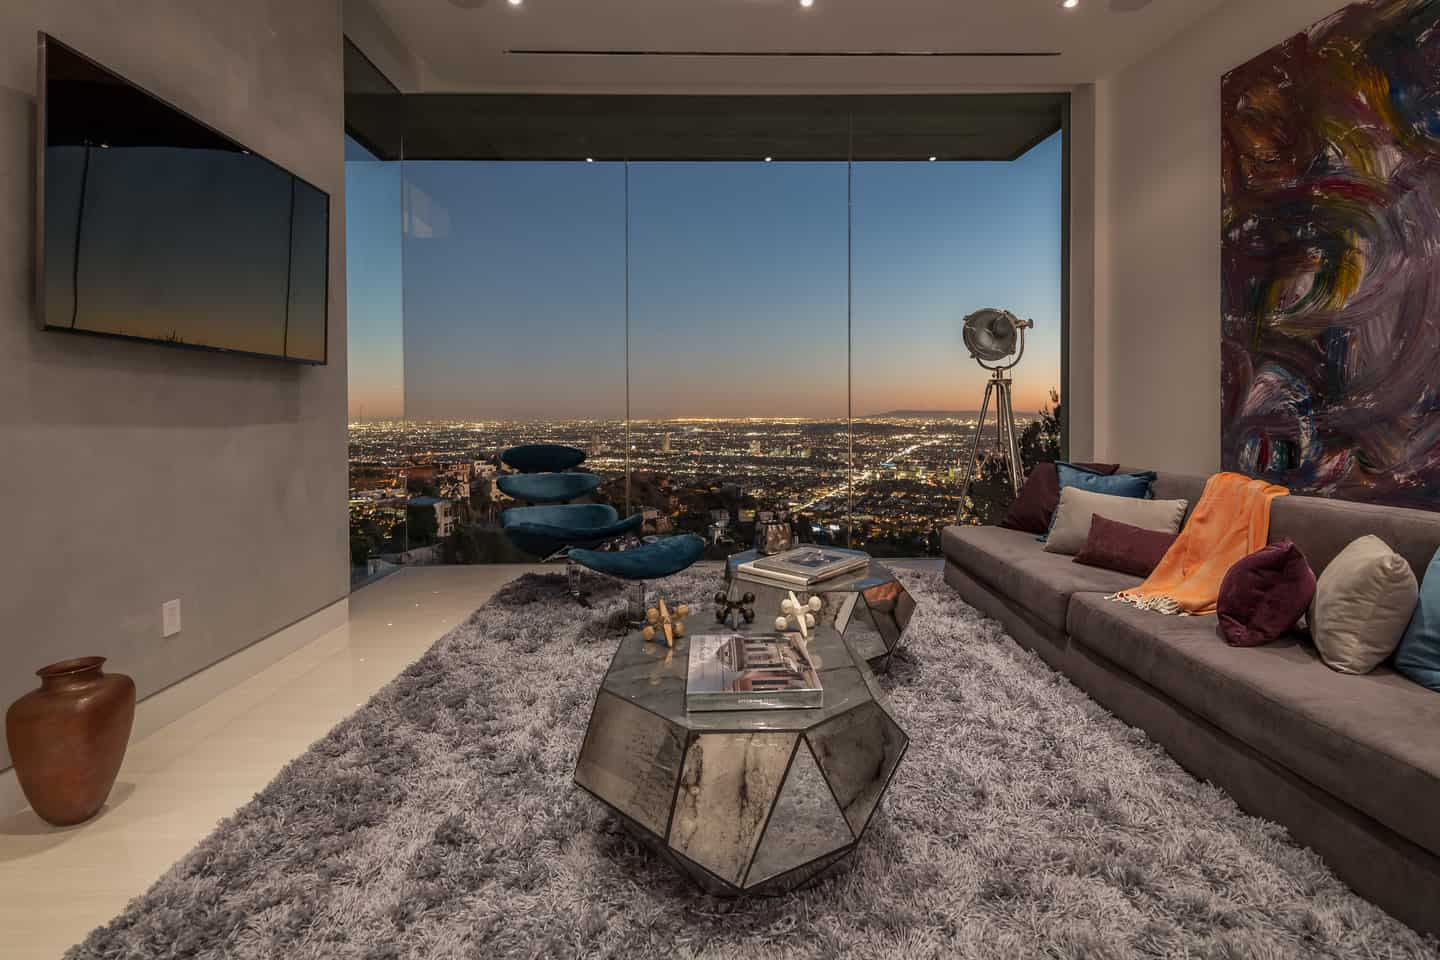 Architecture-Contemporary-Residence-Noesis Group-02-1 Kindesign